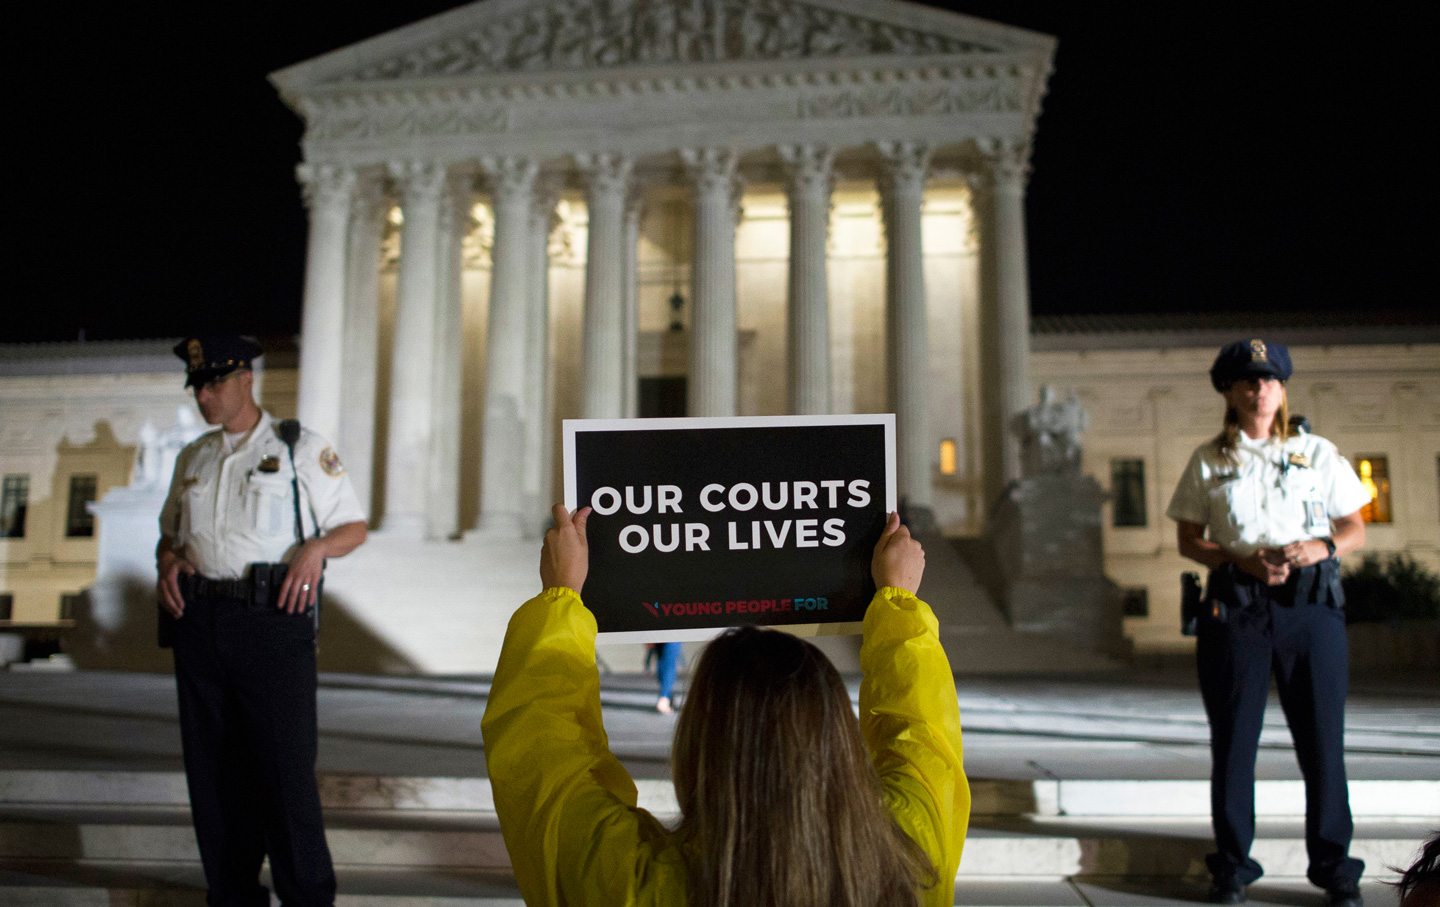 A demonstrator protests in front of the Supreme Court as President Donald Trump announces Judge Brett Kavanaugh as his Supreme Court nominee.